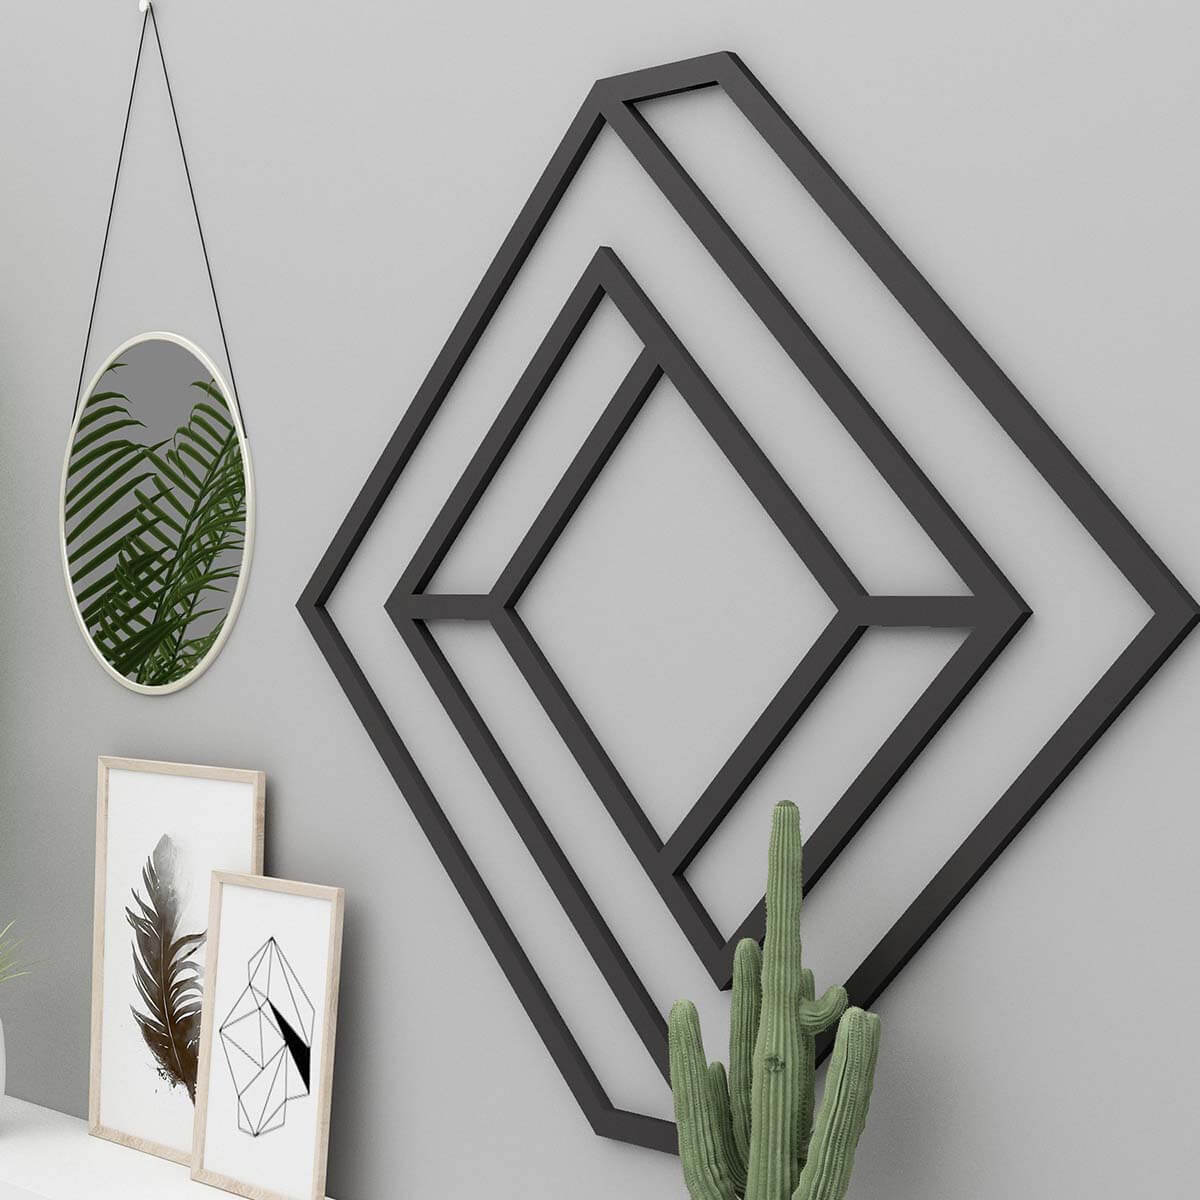 3-D Geometric Metal Home Decor Wall Art